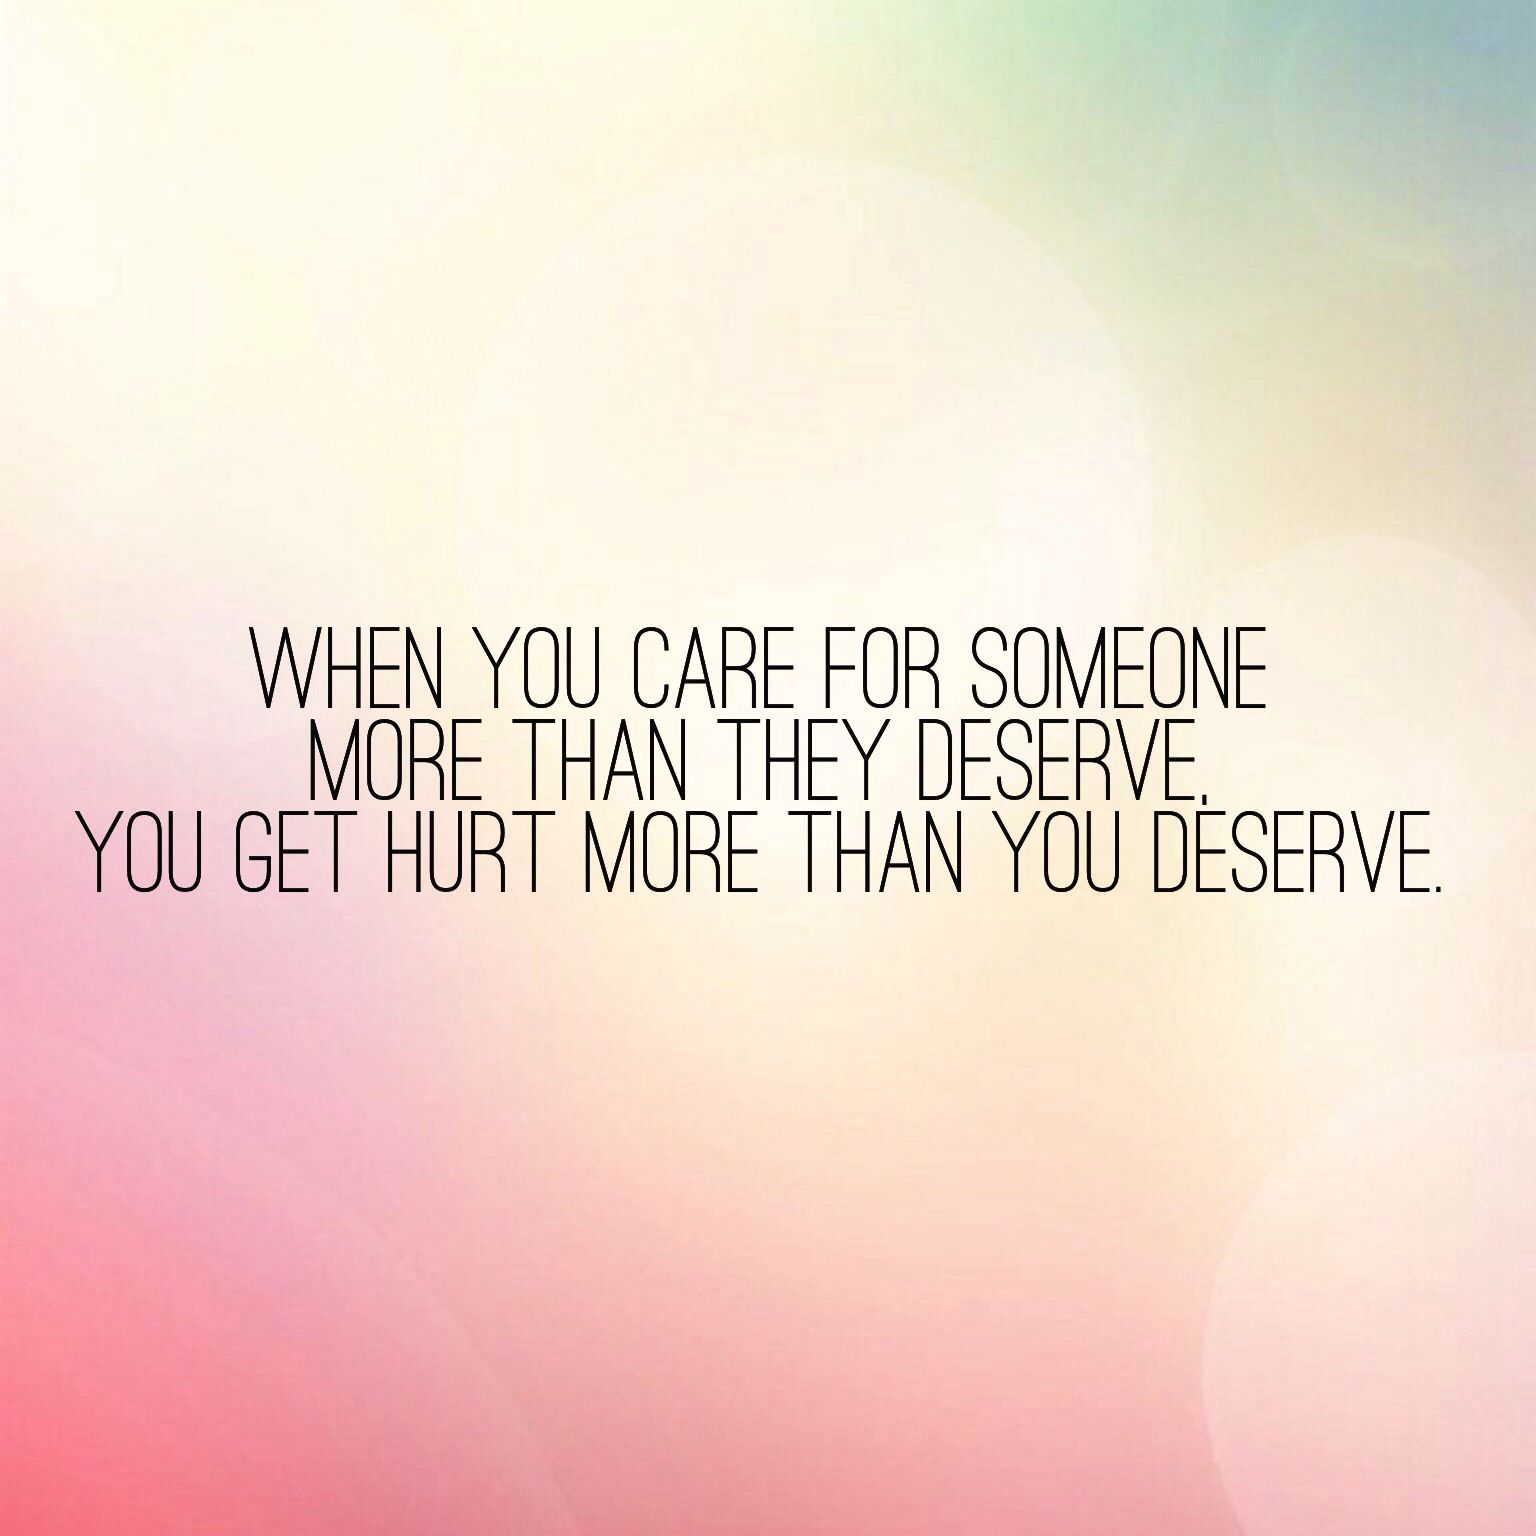 When you care for someone more than they deserve you hurt more than you deserve